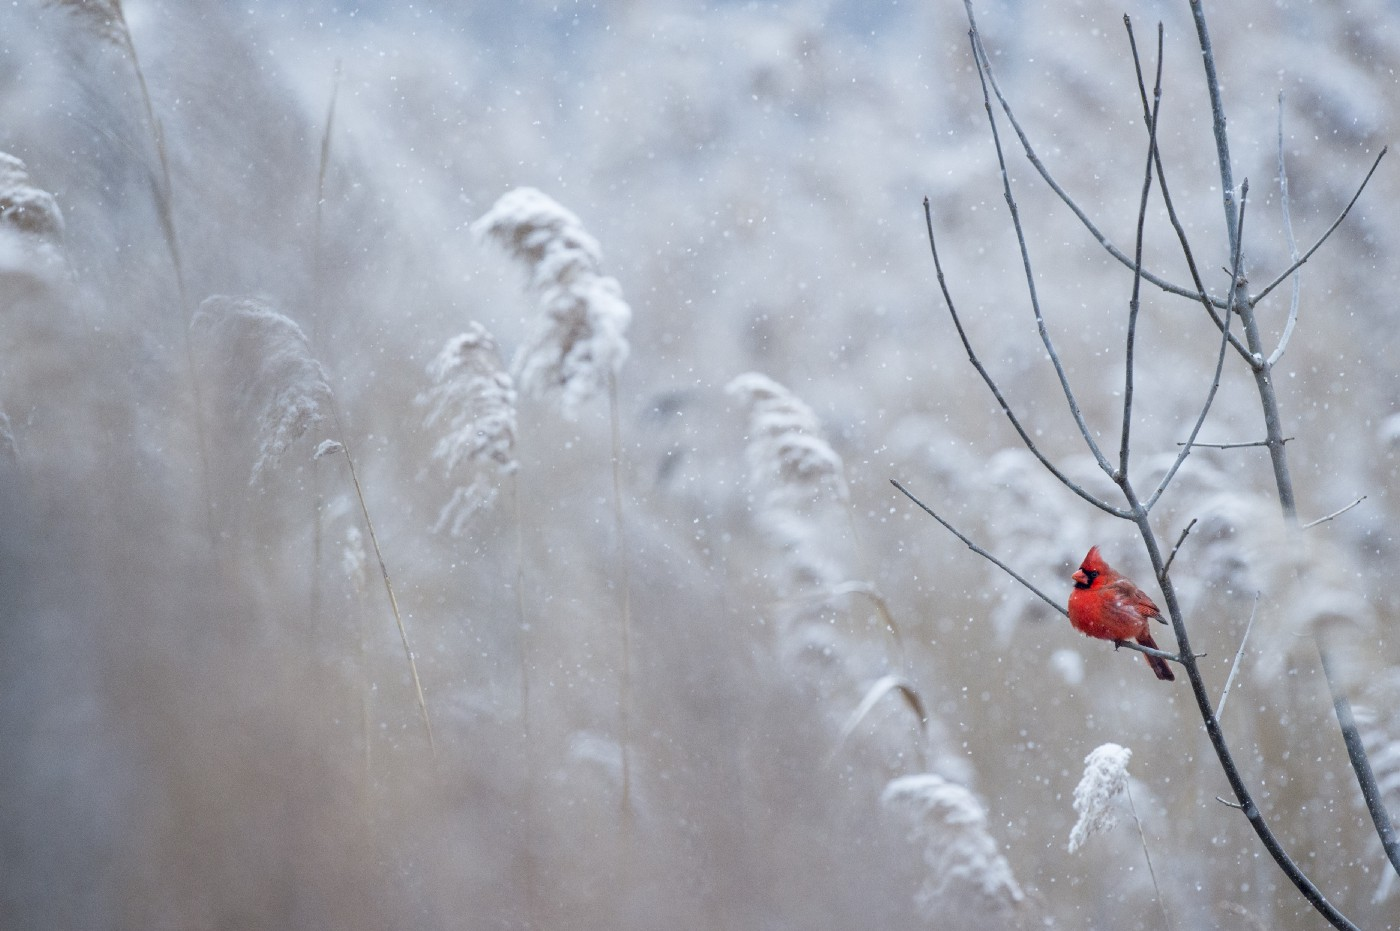 Red bird sitting on a branch in the snow.